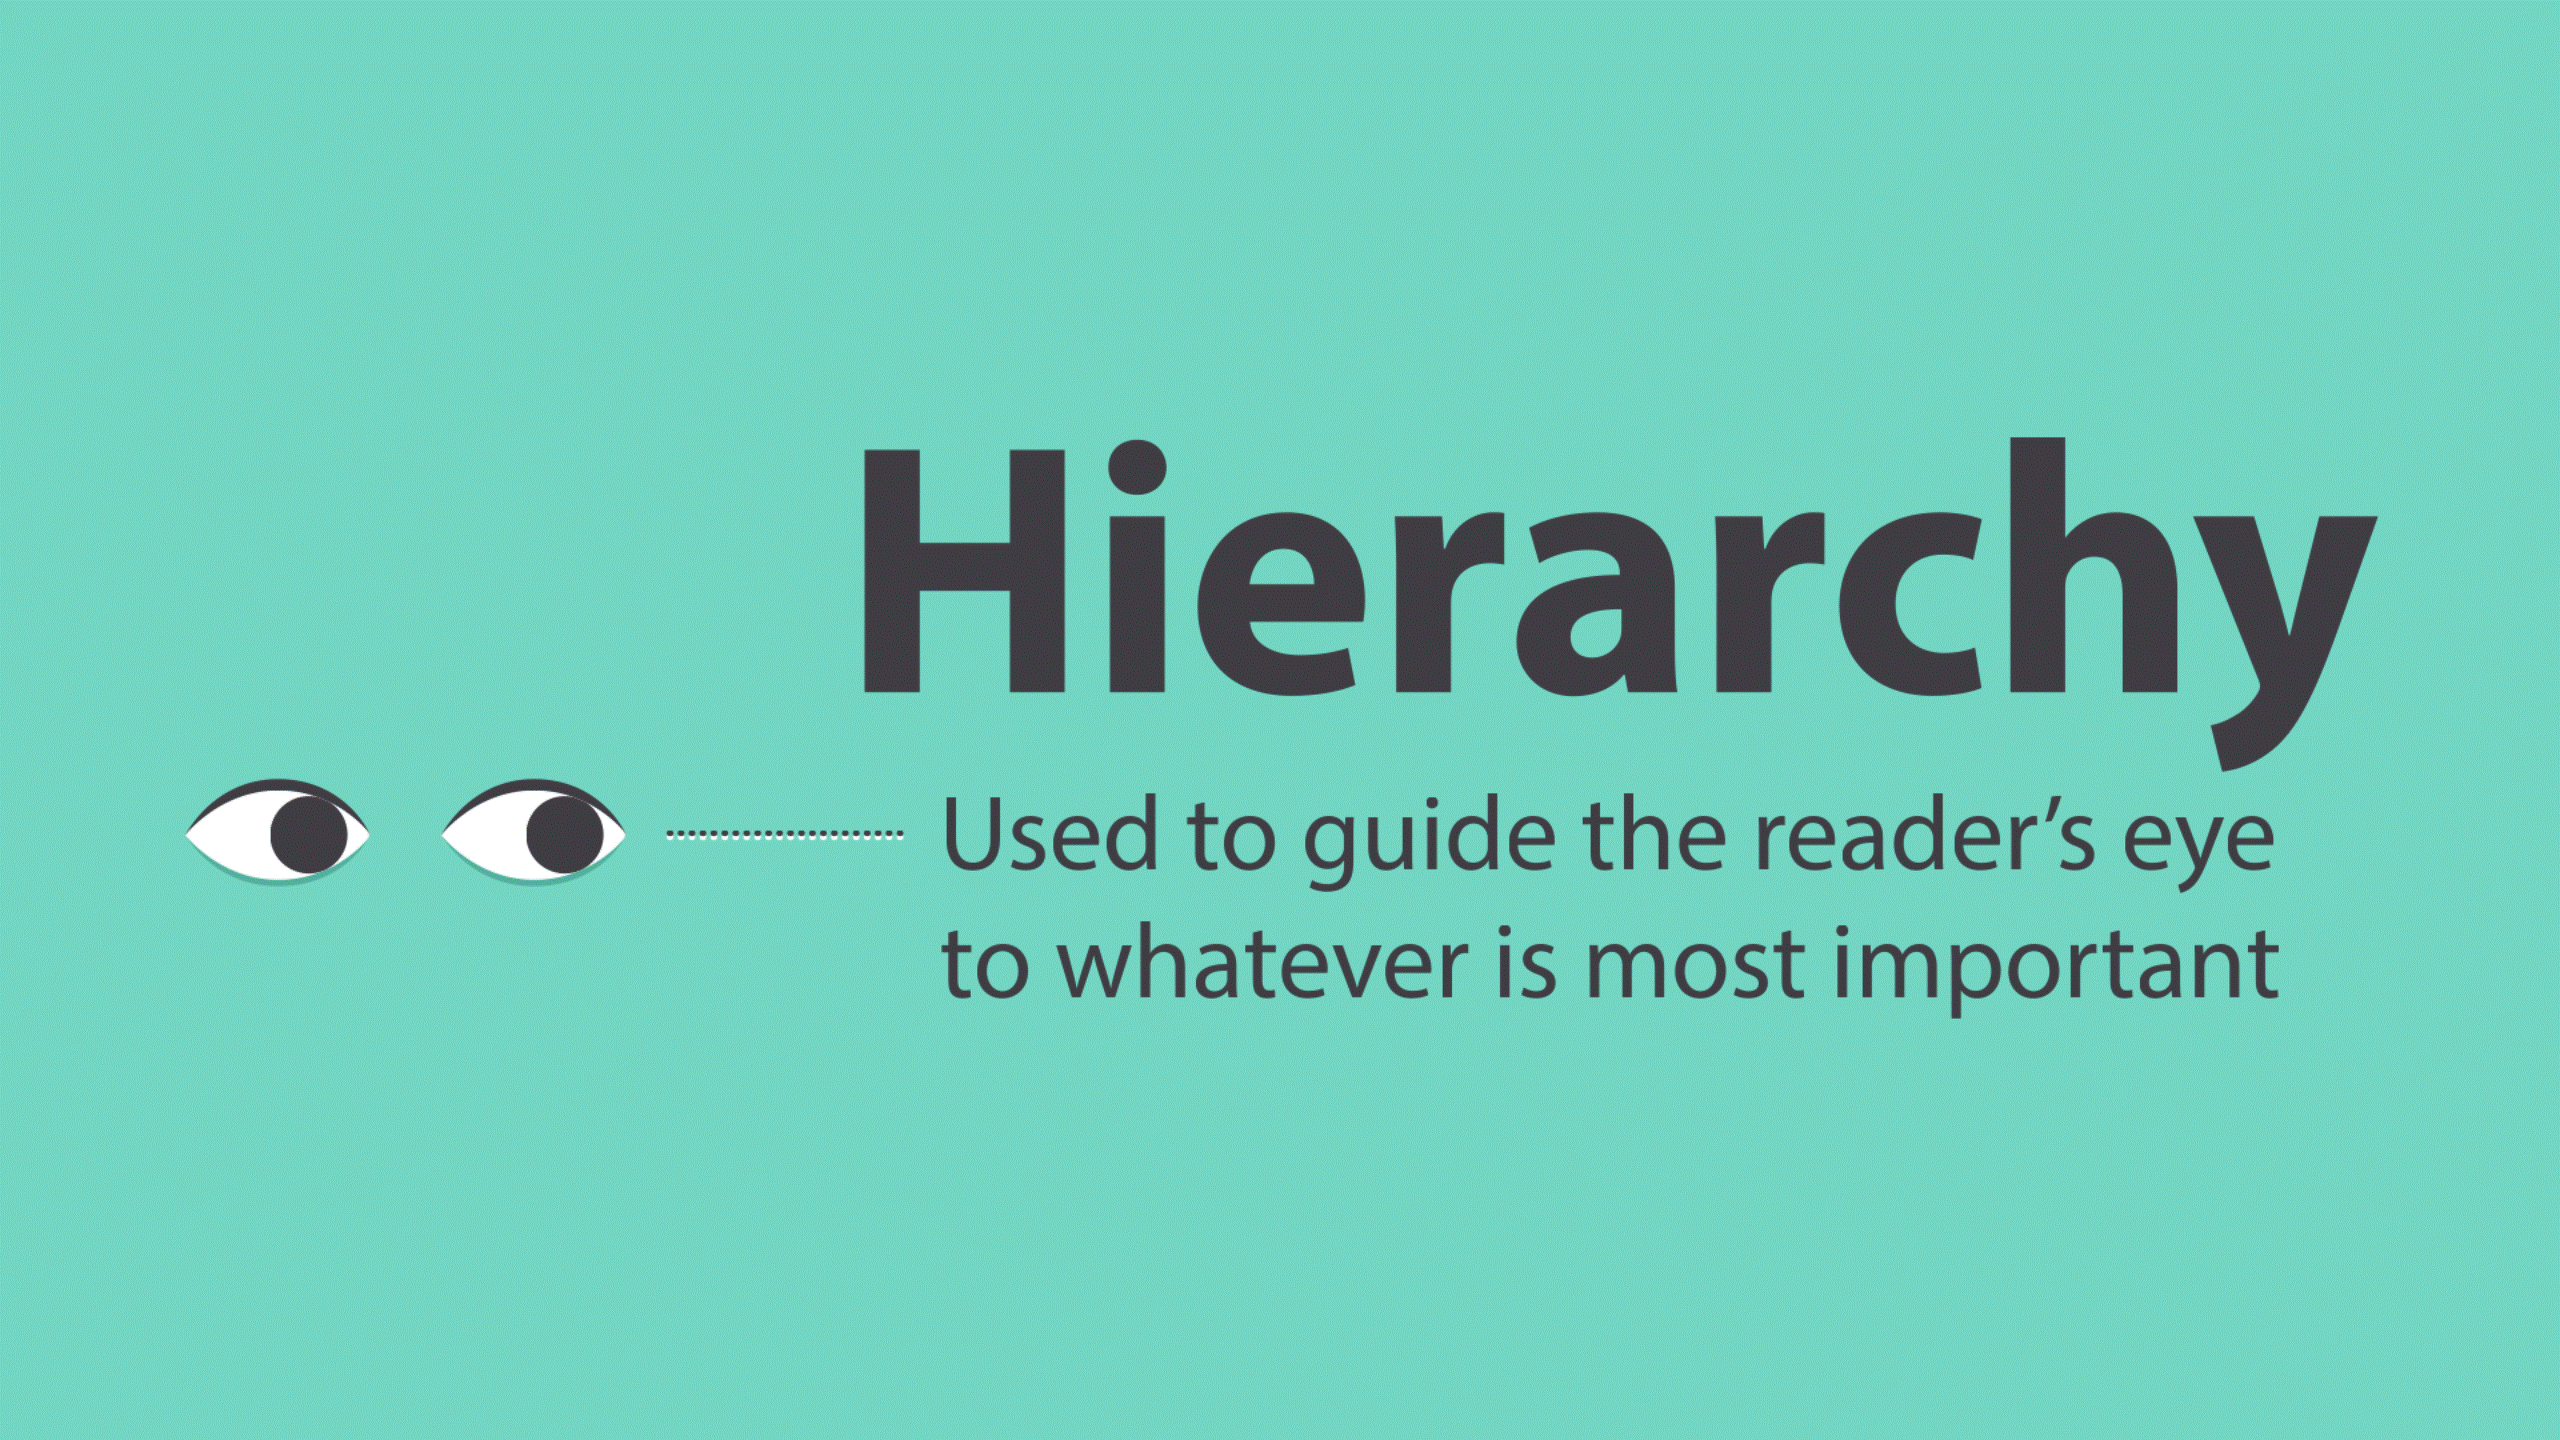 Hierarchy - 5 Best Hierarchal Typographic Techniques For Beginners